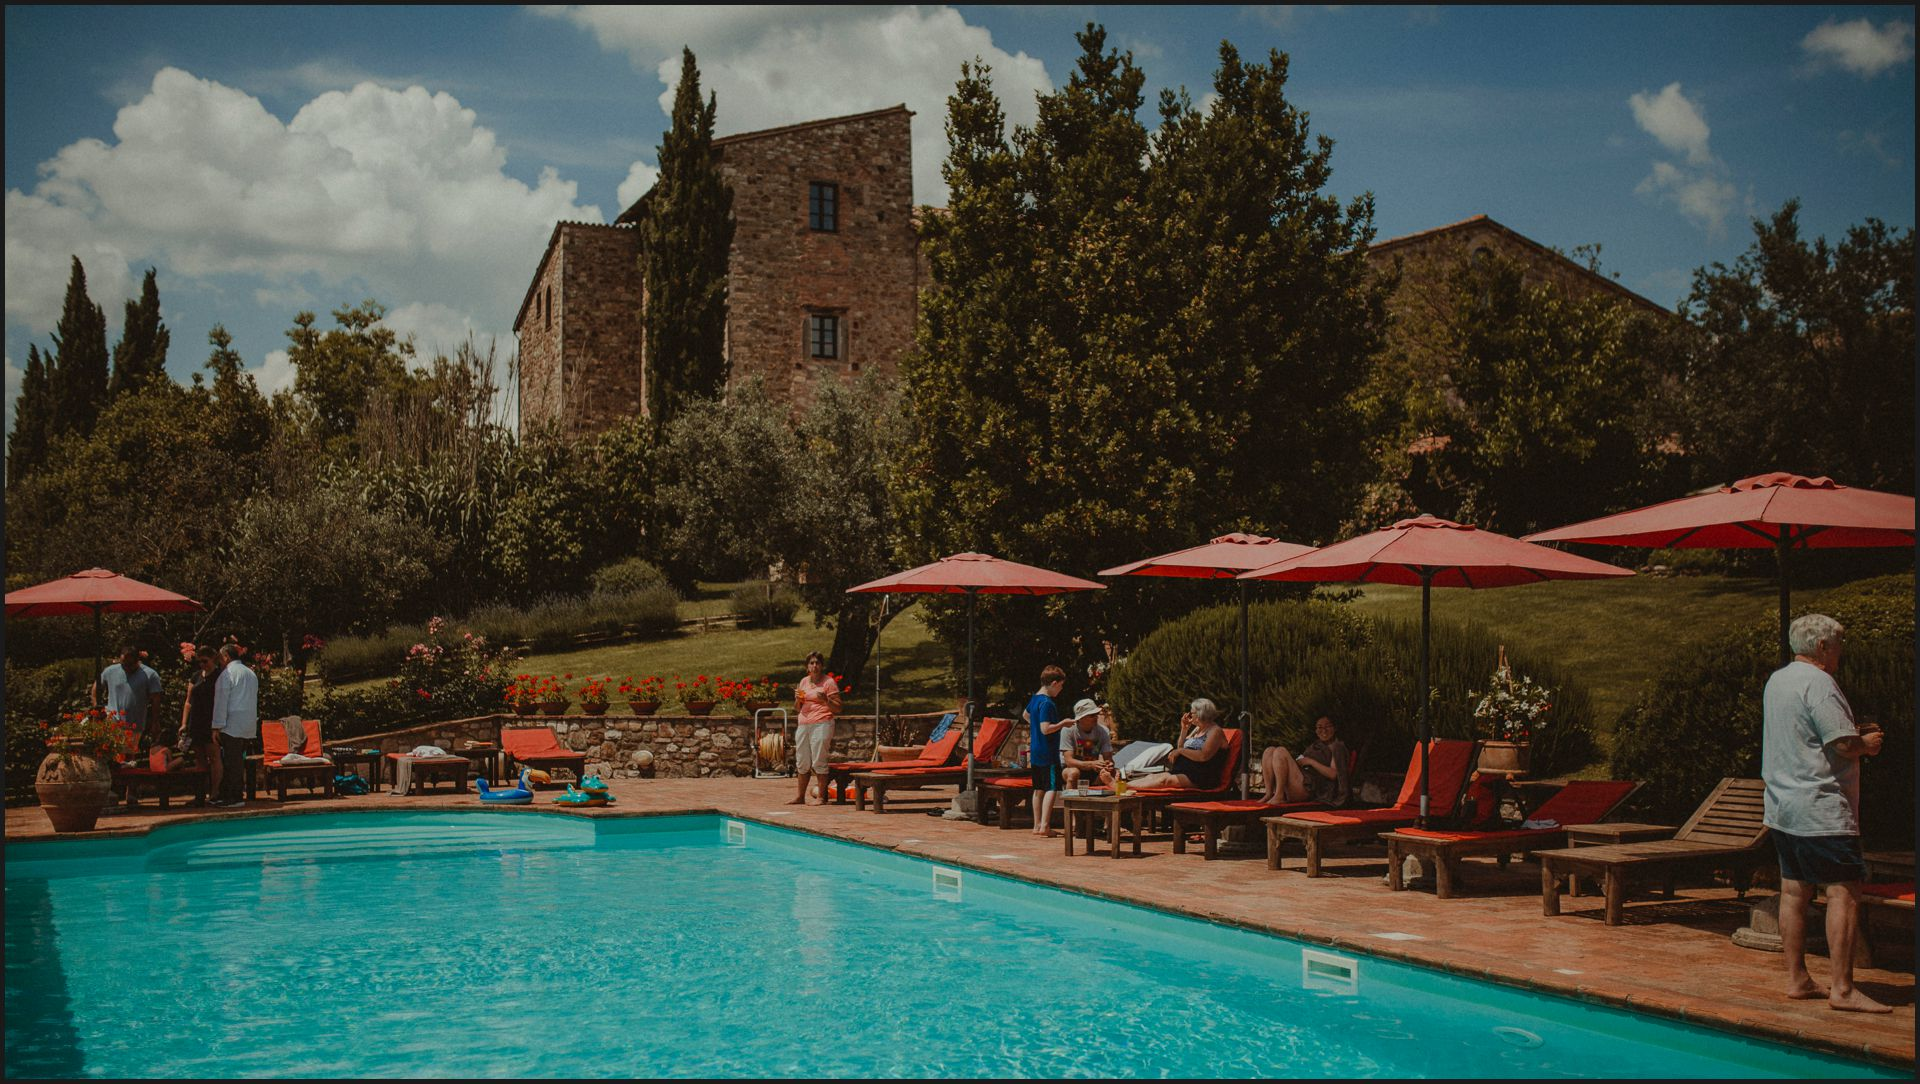 tenuta di canonica, umbria, wedding, pool